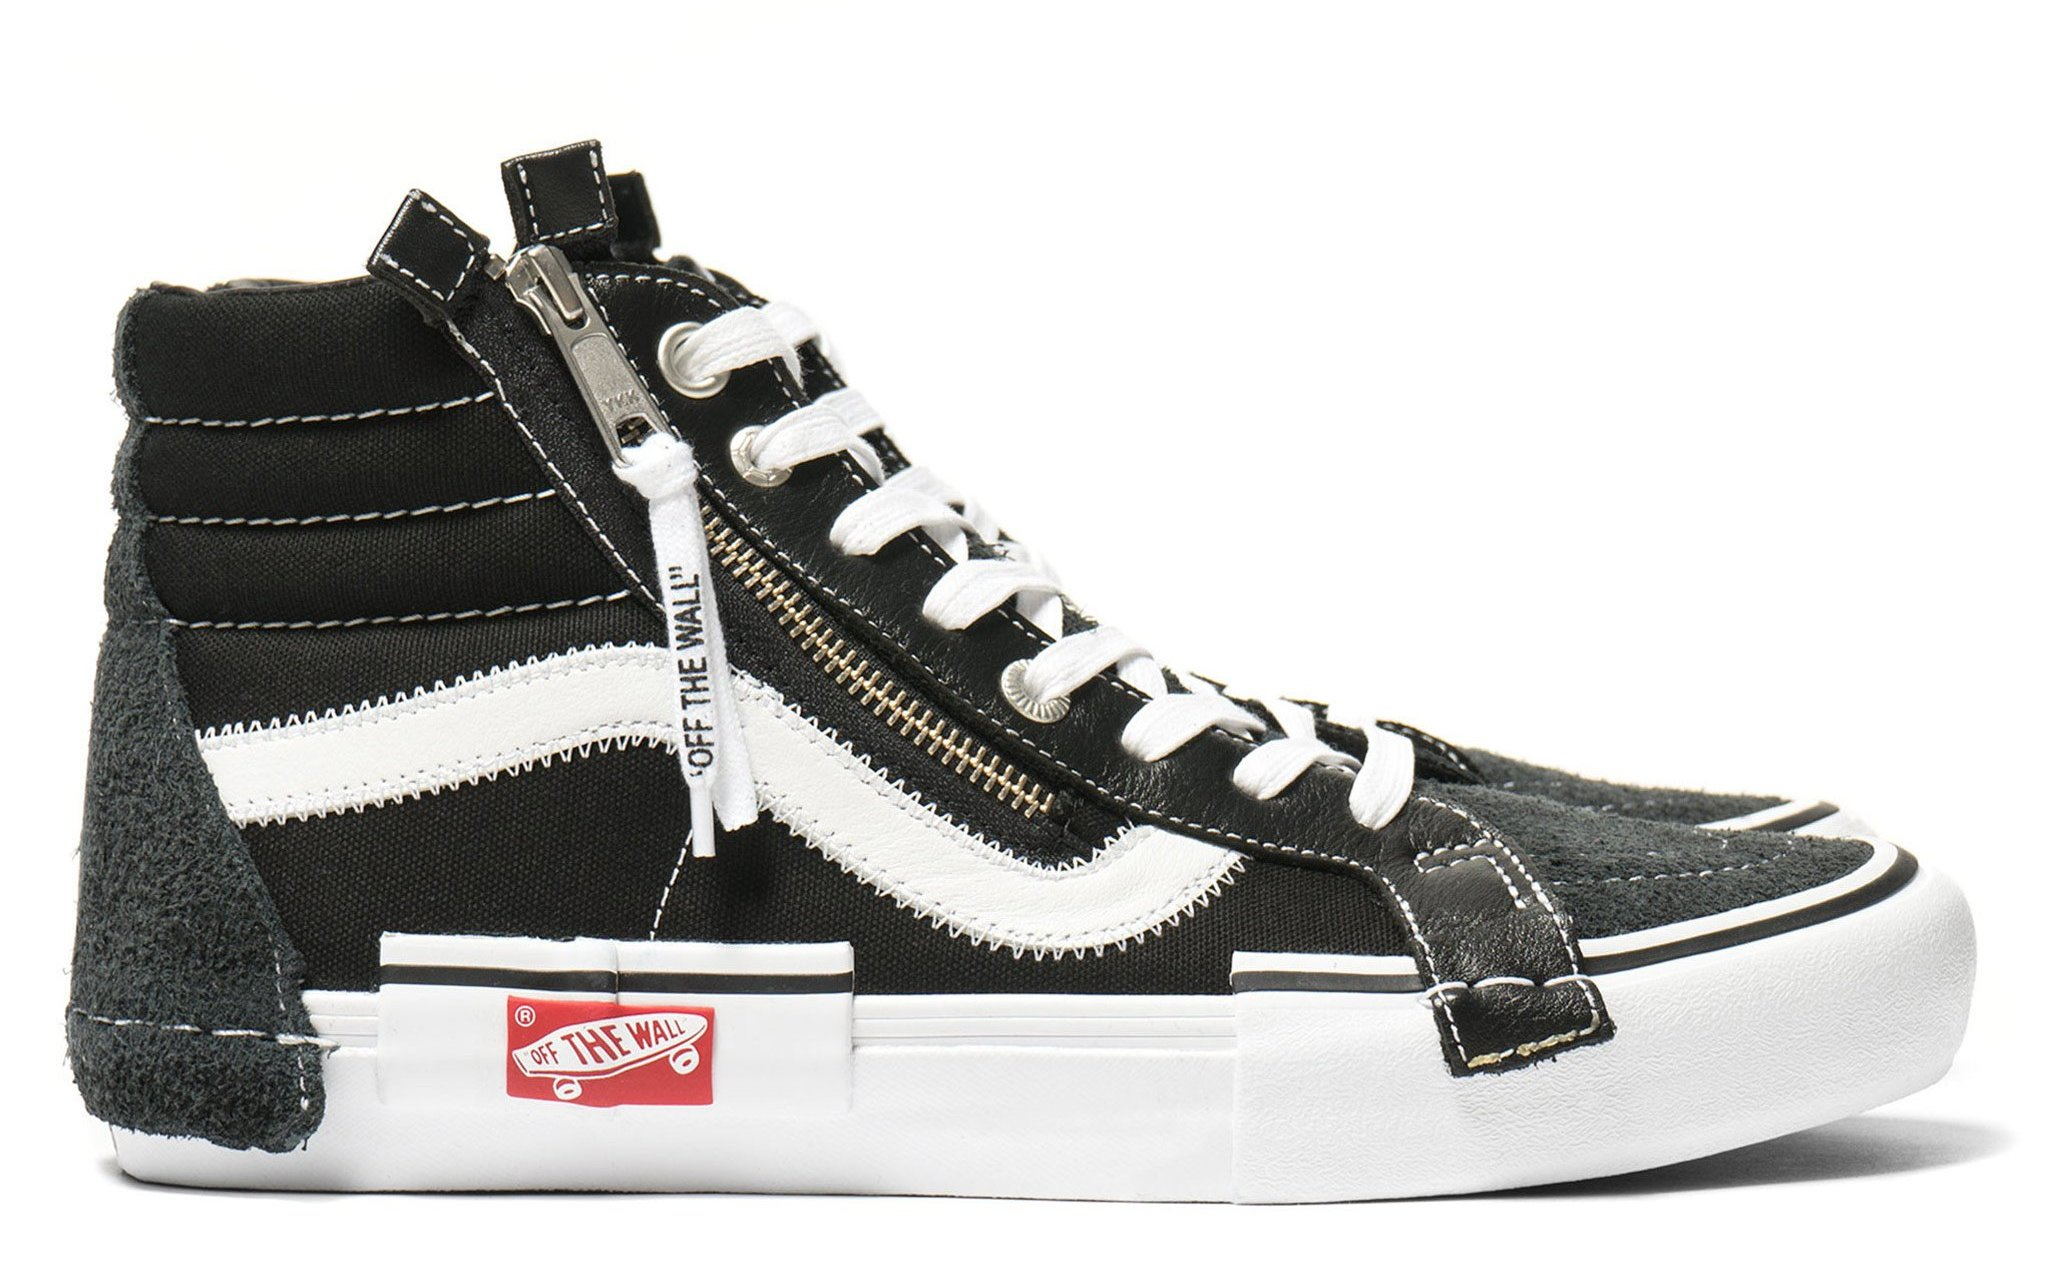 Vans' New Deconstructed 'Inside Out' Pack Looks Like Off-White x ...